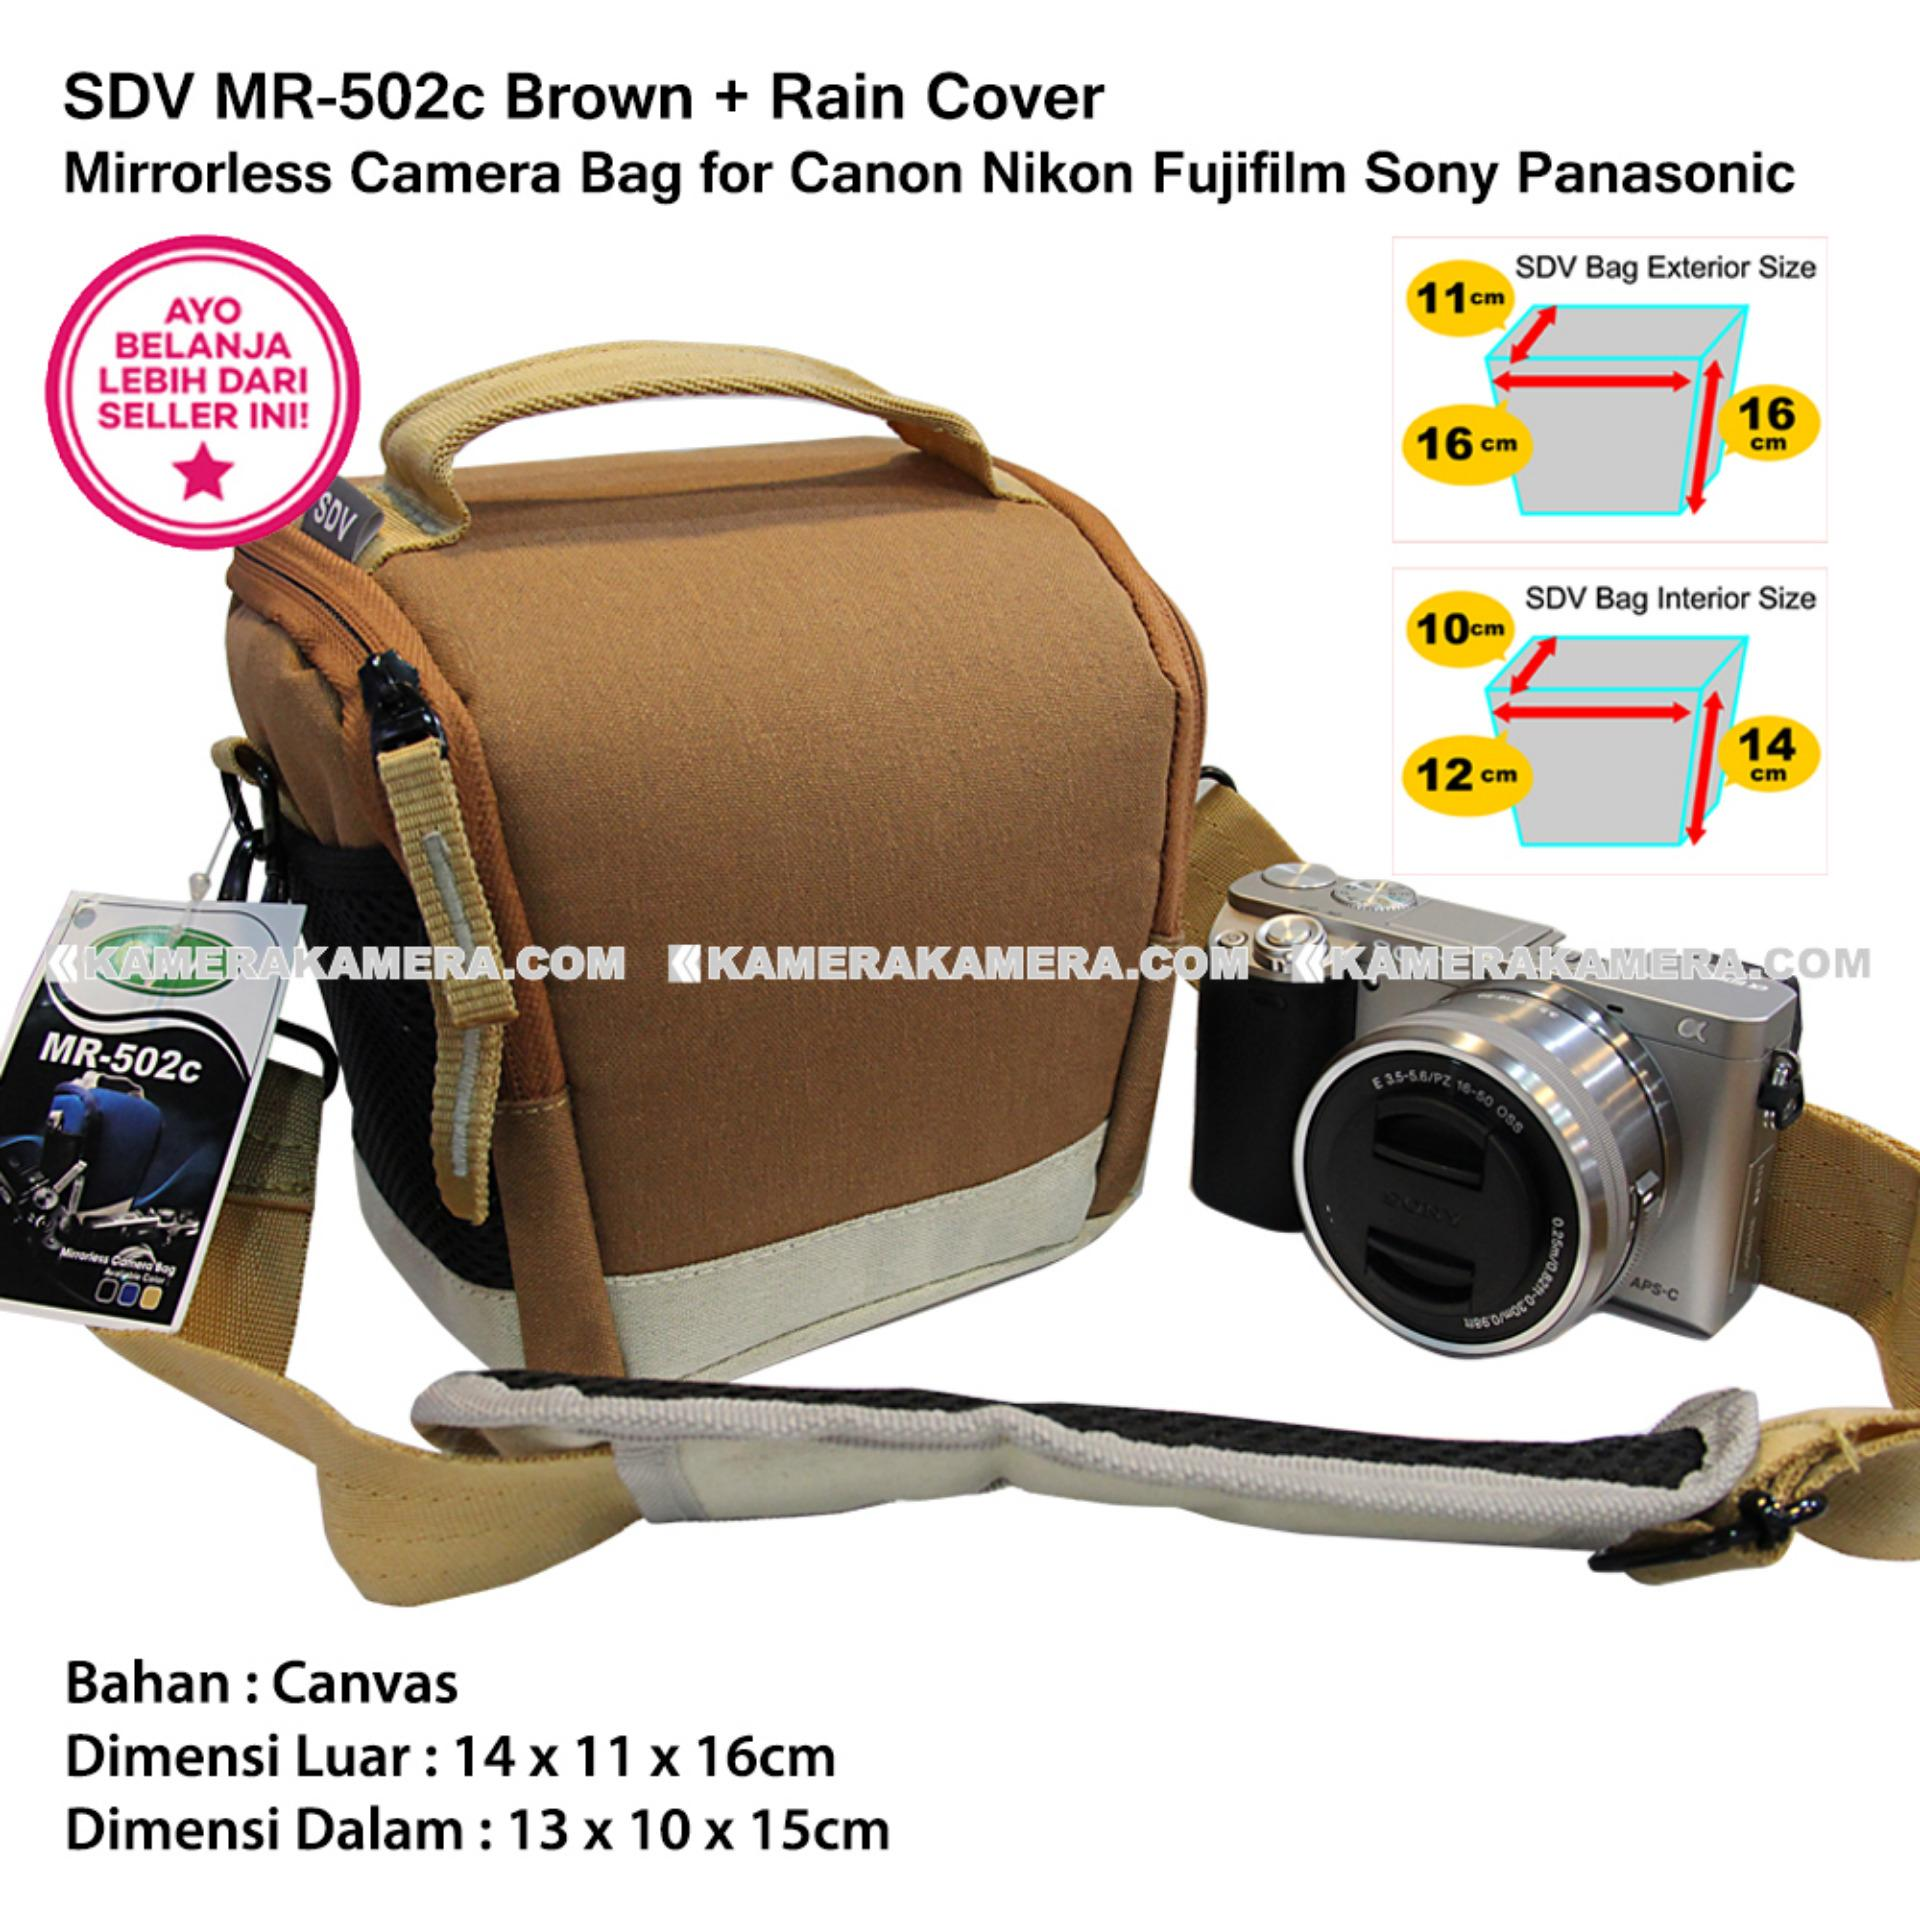 SDV MR-502c Brown Canvas Bag with Rain Cover Tas Kamera Mirrorless Canon Nikon Sony FujiFilm Panasonic Olympus Samsung